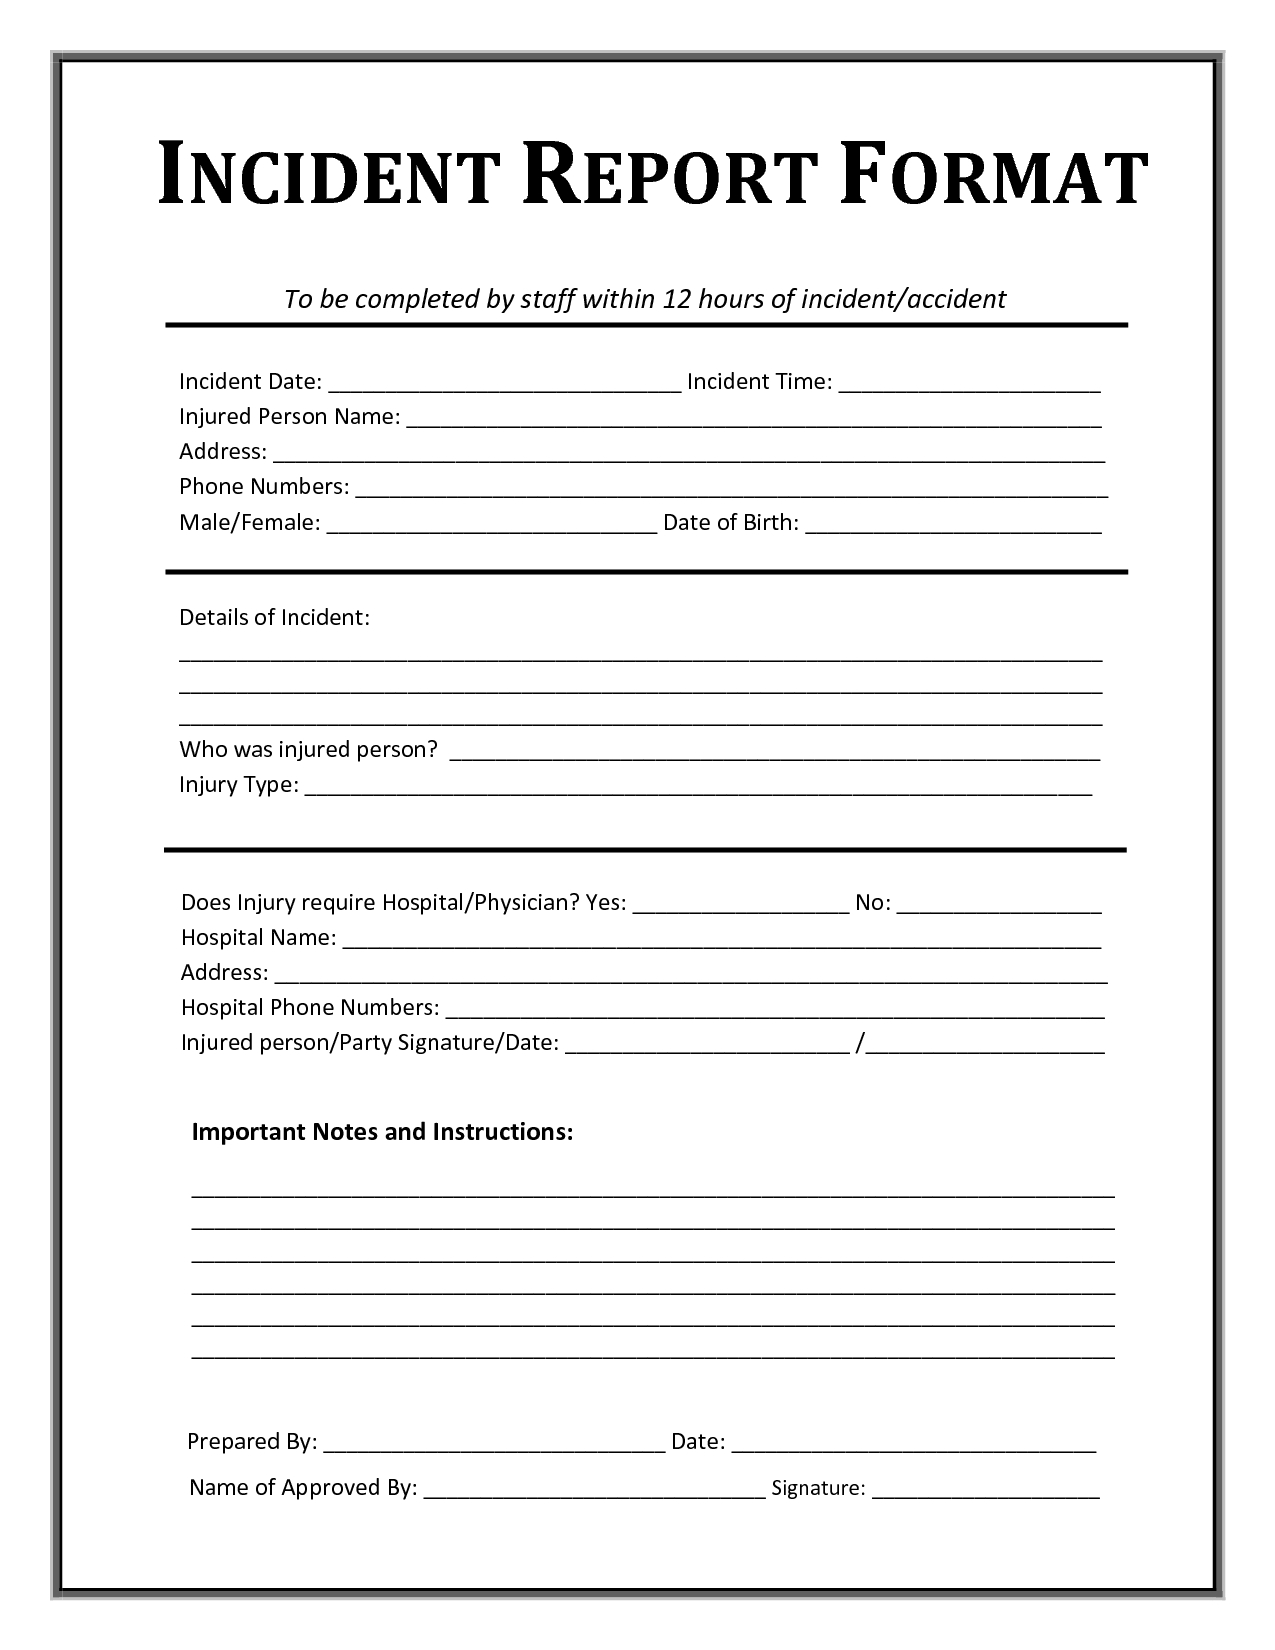 Incident Report Form Template Microsoft Excel | Report Templates - Free Printable Incident Report Form